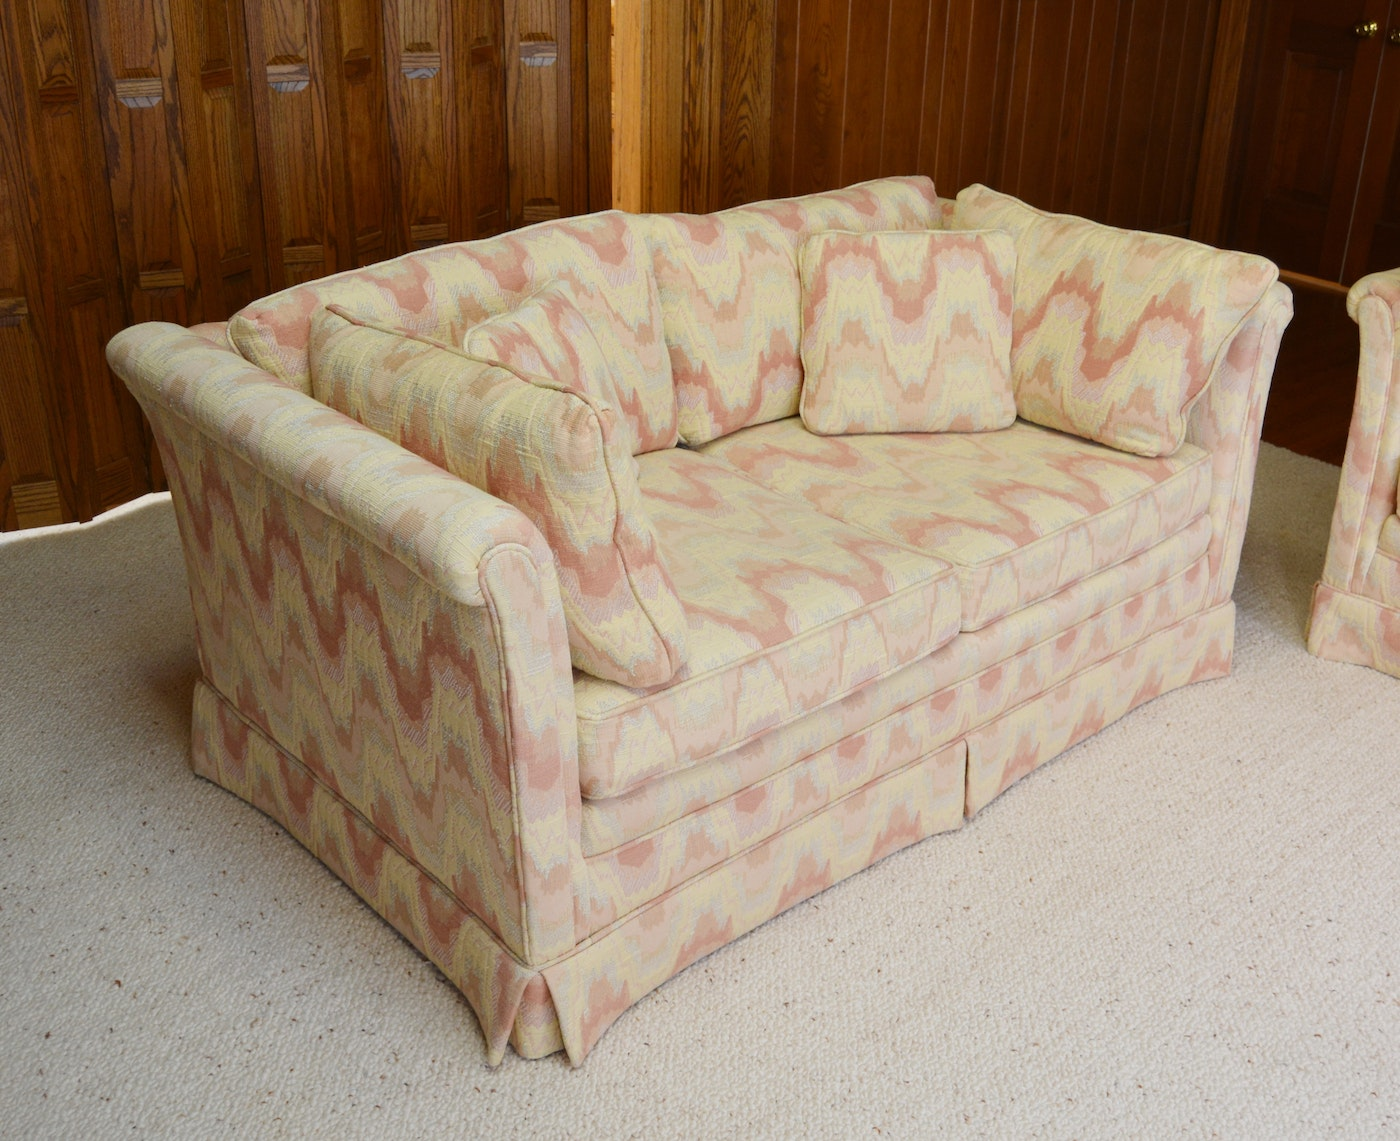 Loveseats By North Hickory Furniture, 20th Century